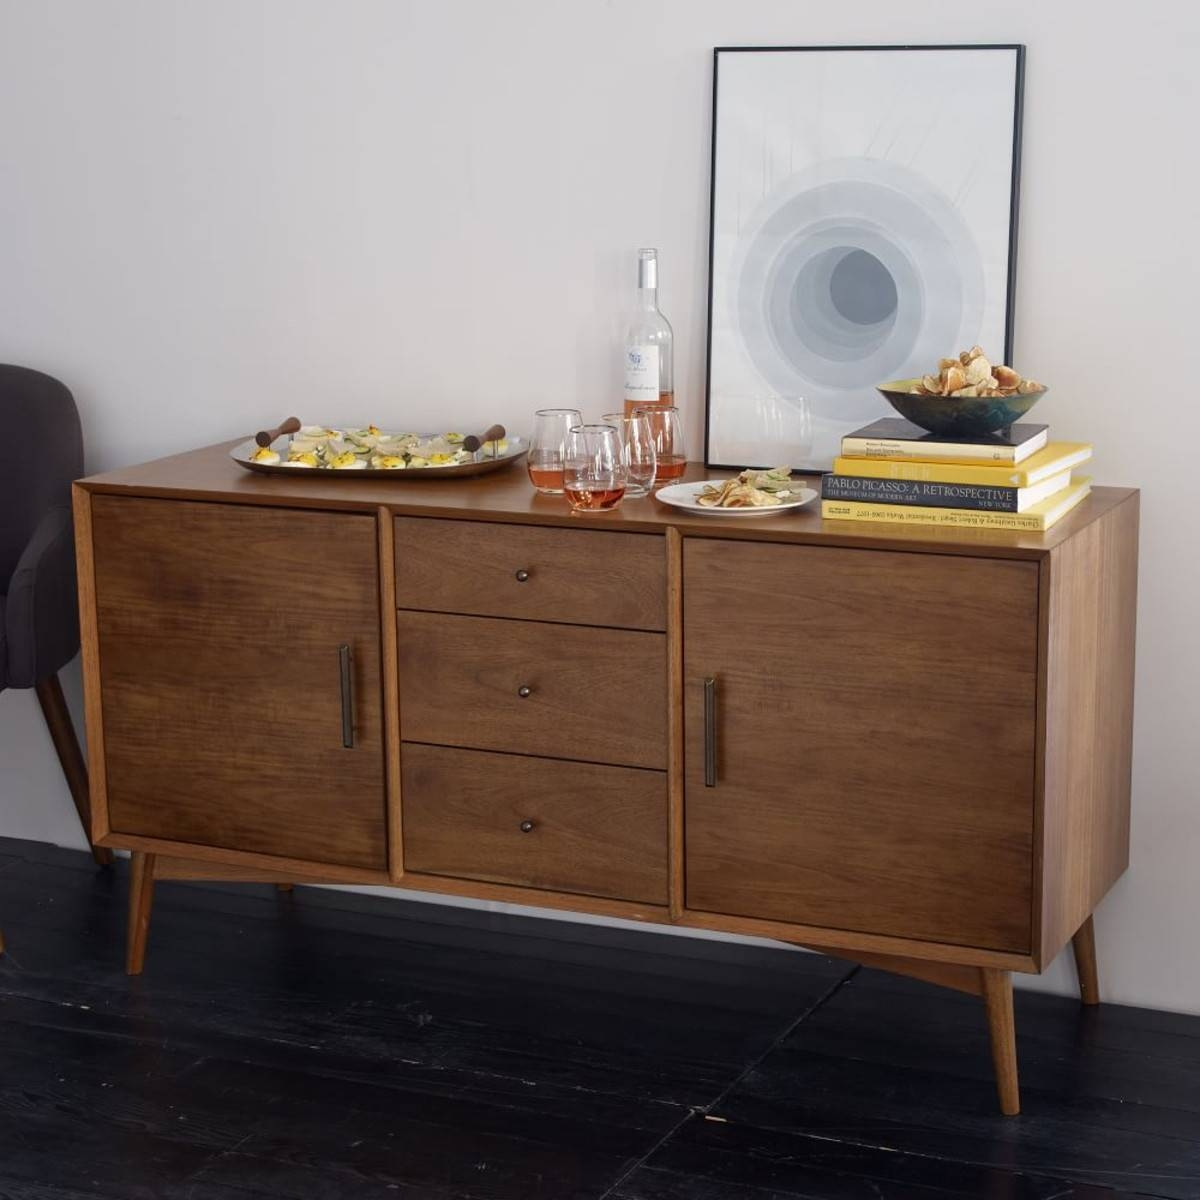 Can You Find Time With An Antique Mid Century Buffet Or Sideboard inside Mid Century Sideboards (Image 1 of 15)